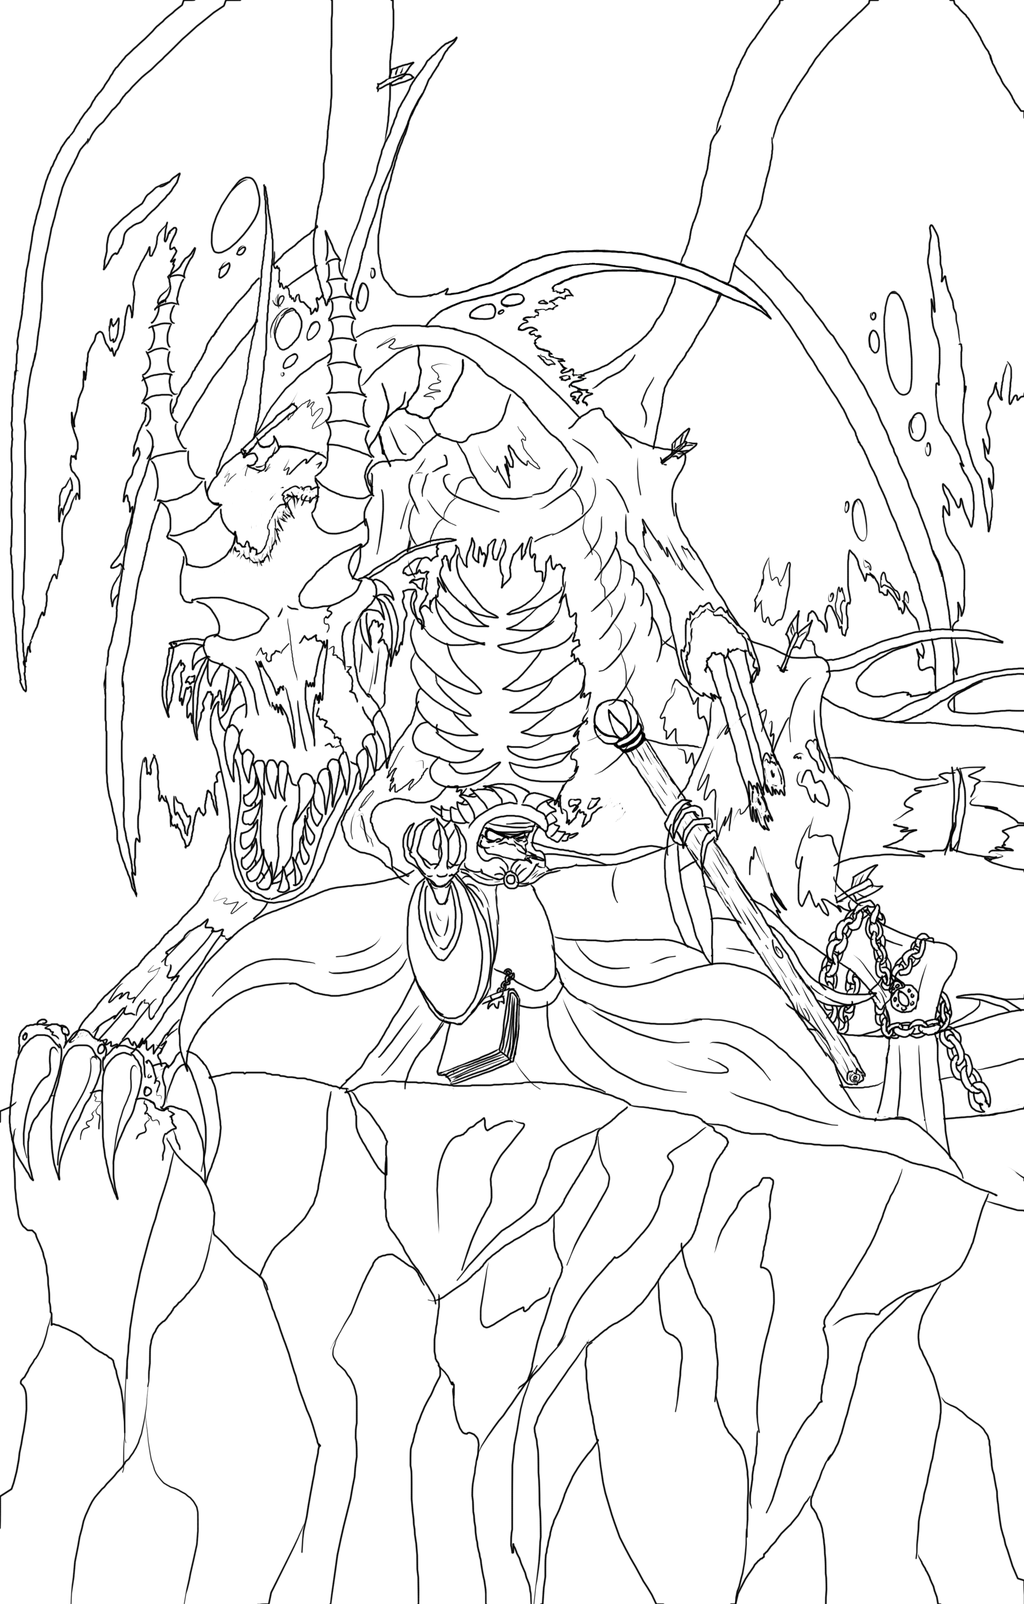 Most recent image: Raising the zombie dragon